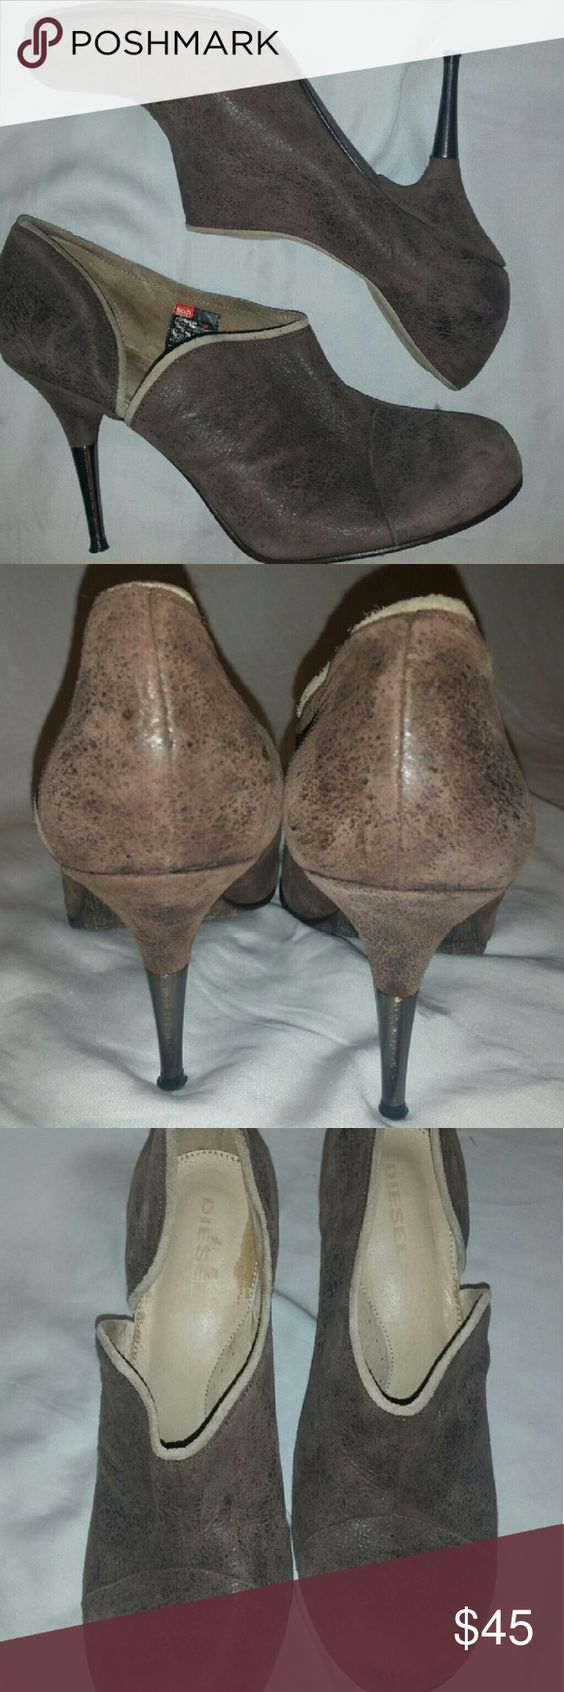 DIESEL MELLANA DISTRESSED LEATHER Worn once,  great condition distressed leather half boot half pumps with brushed nickel heel , perfect color for fall,  discolouration on inside of shoe. DIESEL  Shoes Heels